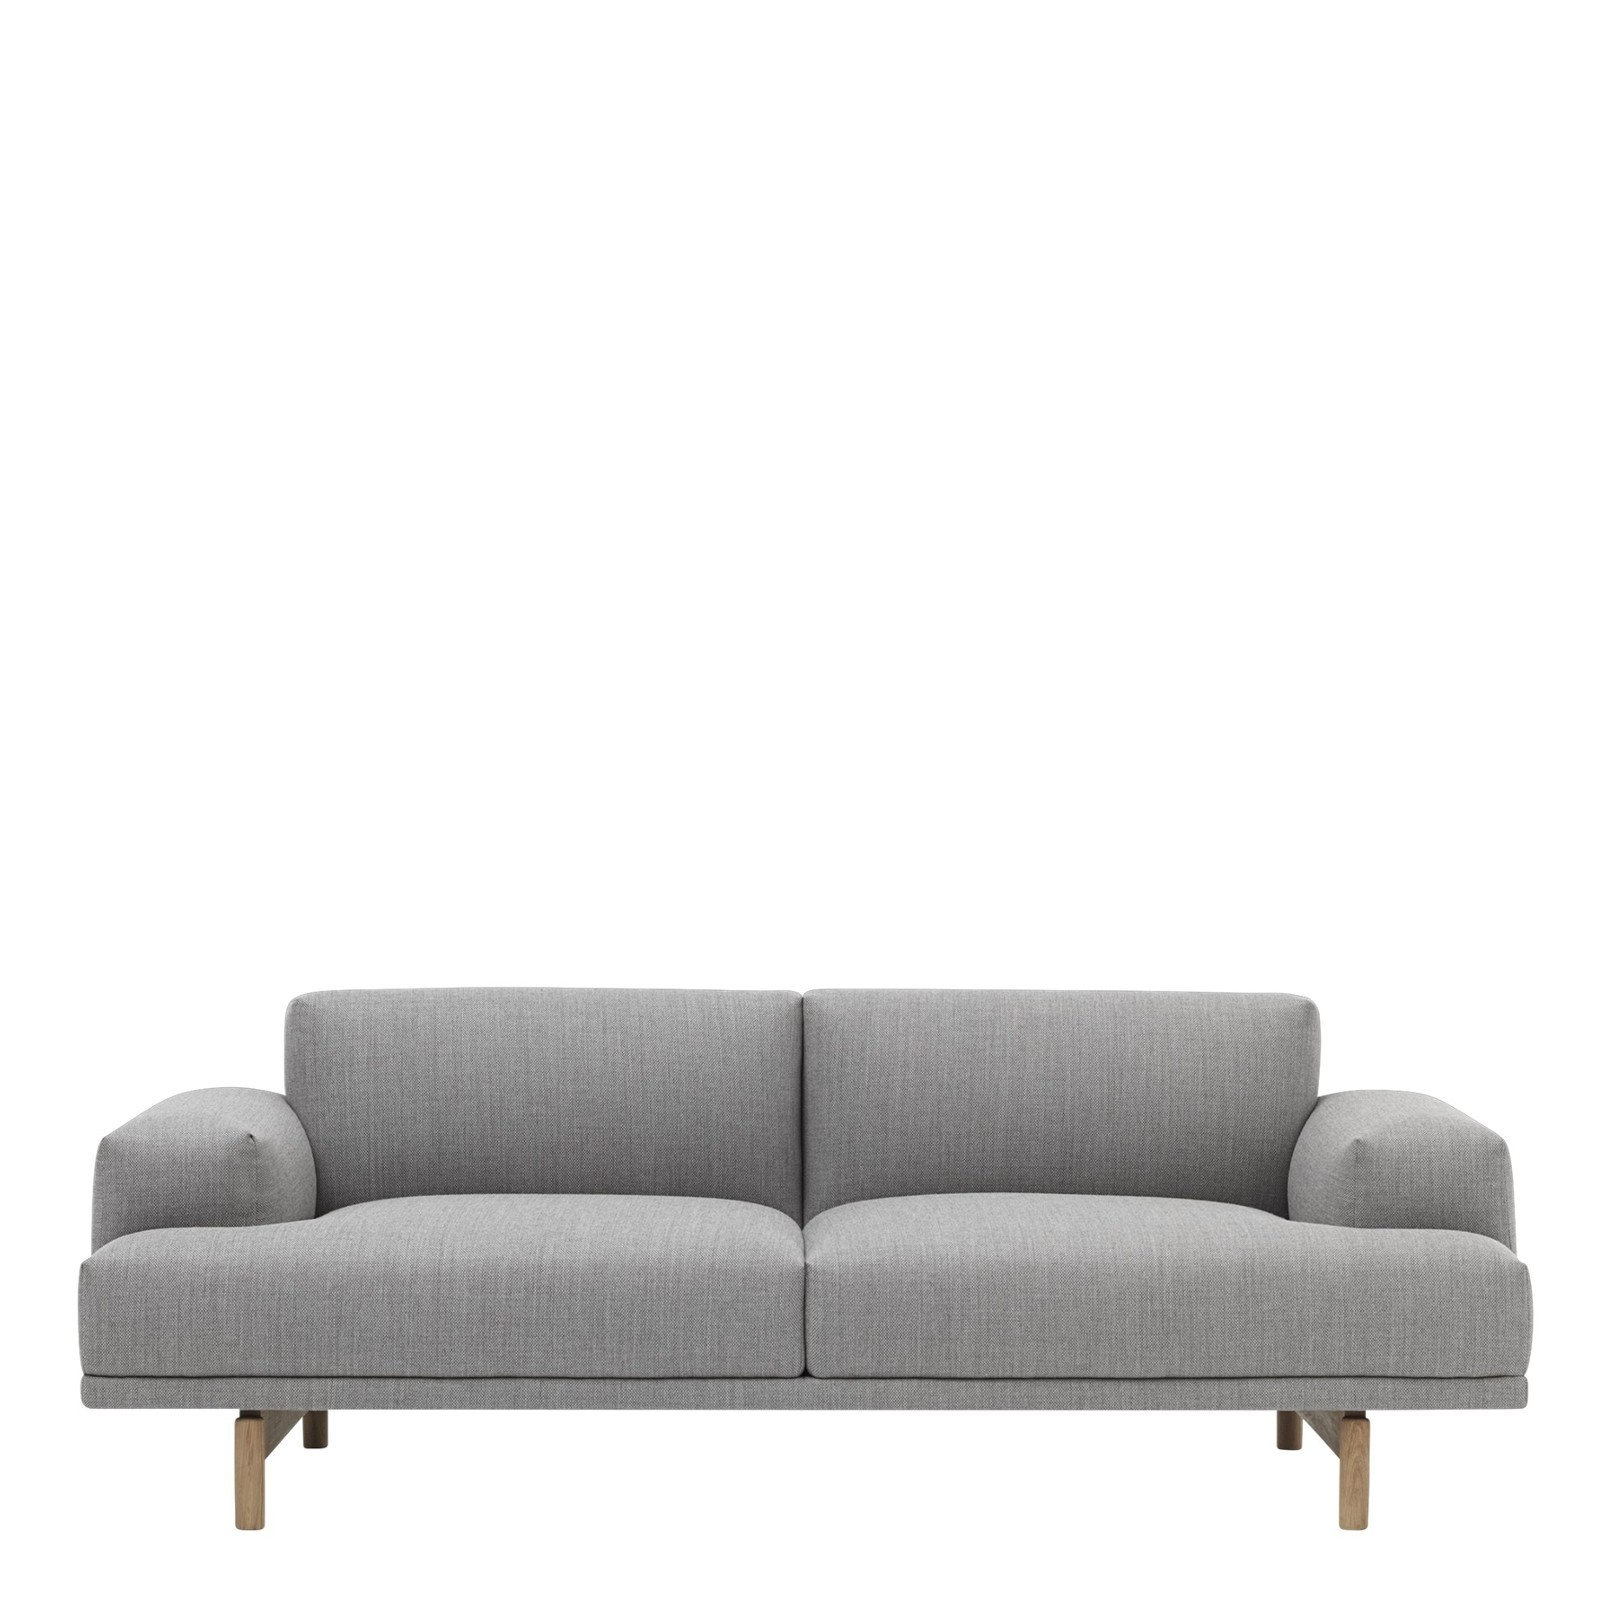 Full Size of Muuto Sofa Outline Chaise Longue Sofabord Cecilie Manz Connect Uk 3 Seater Xl Rest Sale 1/2 Table System Eg Compose 2 Review Sitzer Online Kaufen Found4you Sofa Muuto Sofa